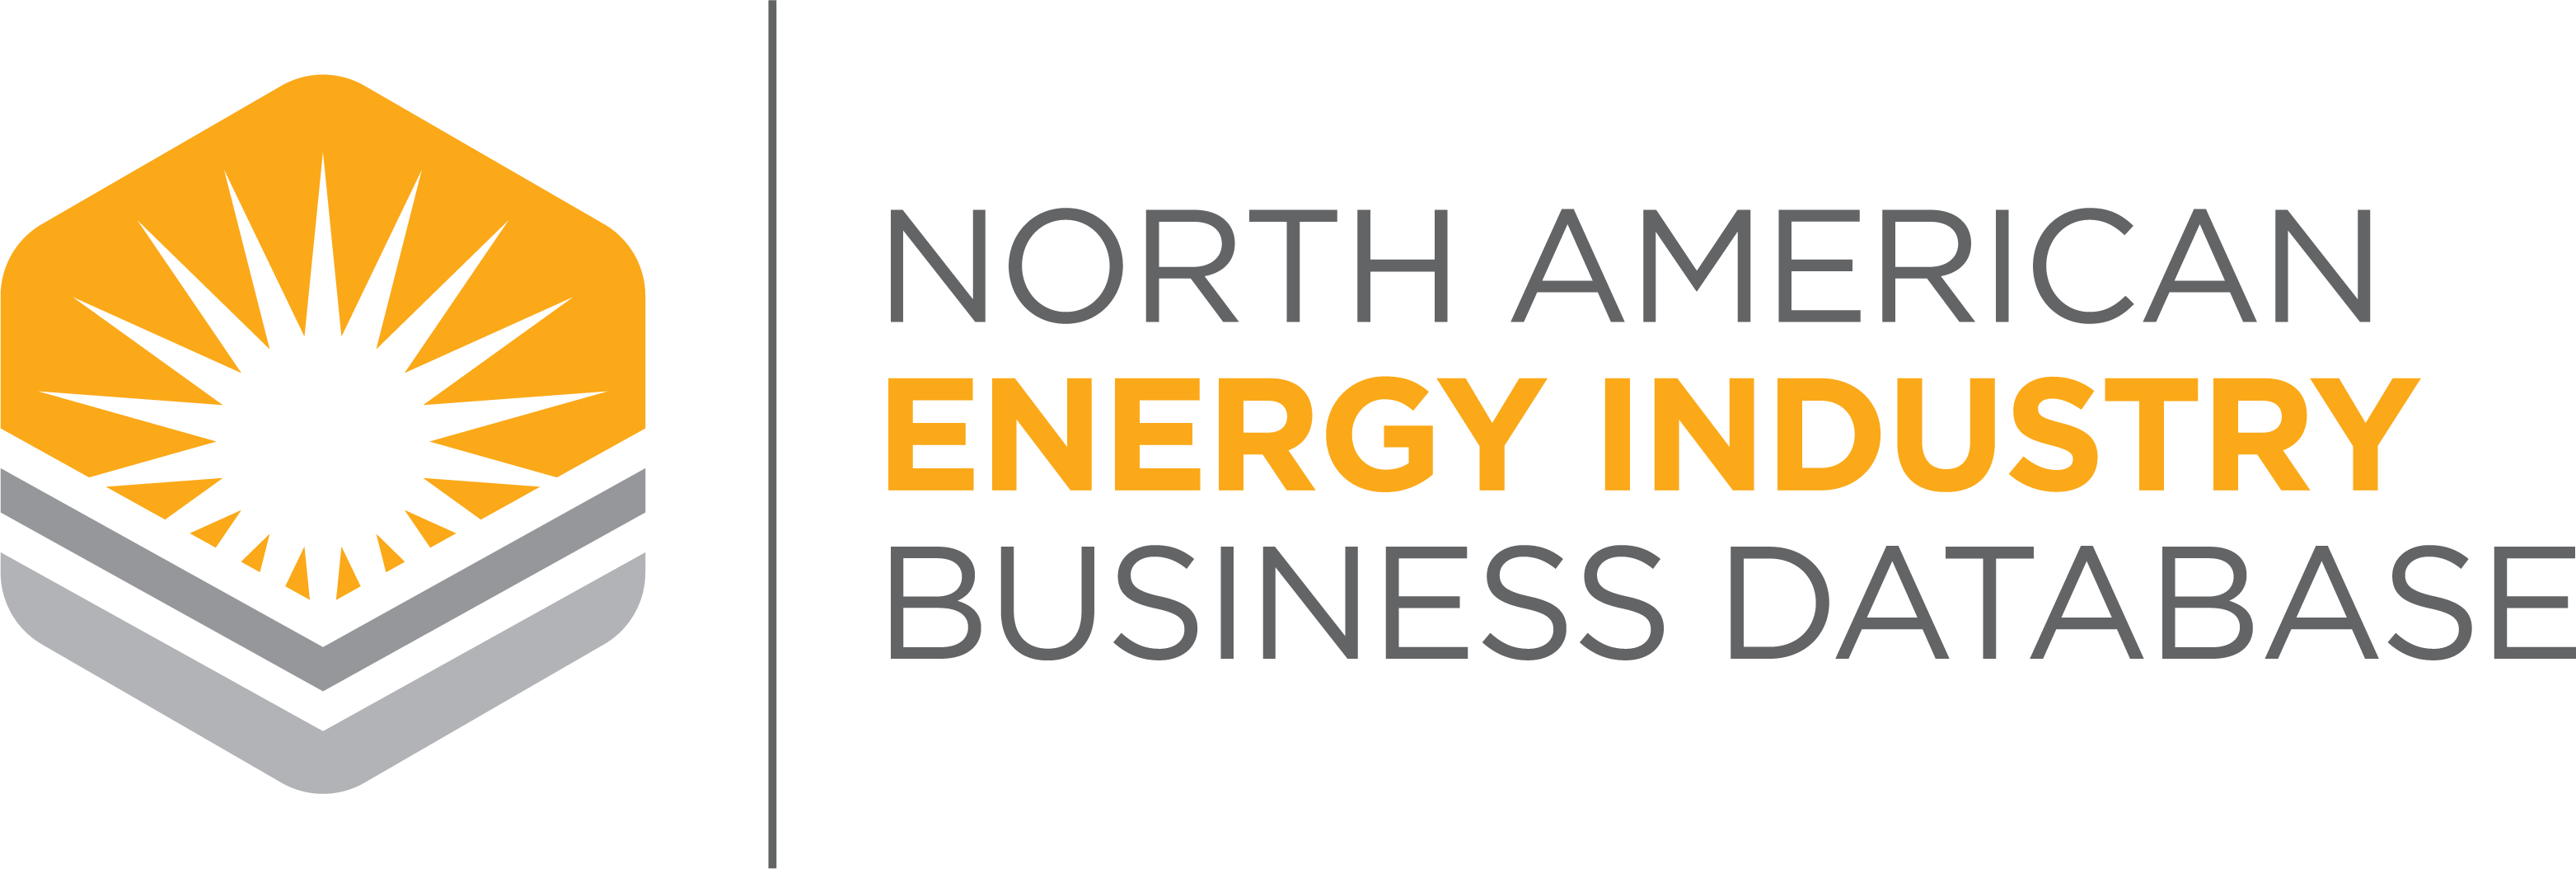 Global Energy Industry Business Database